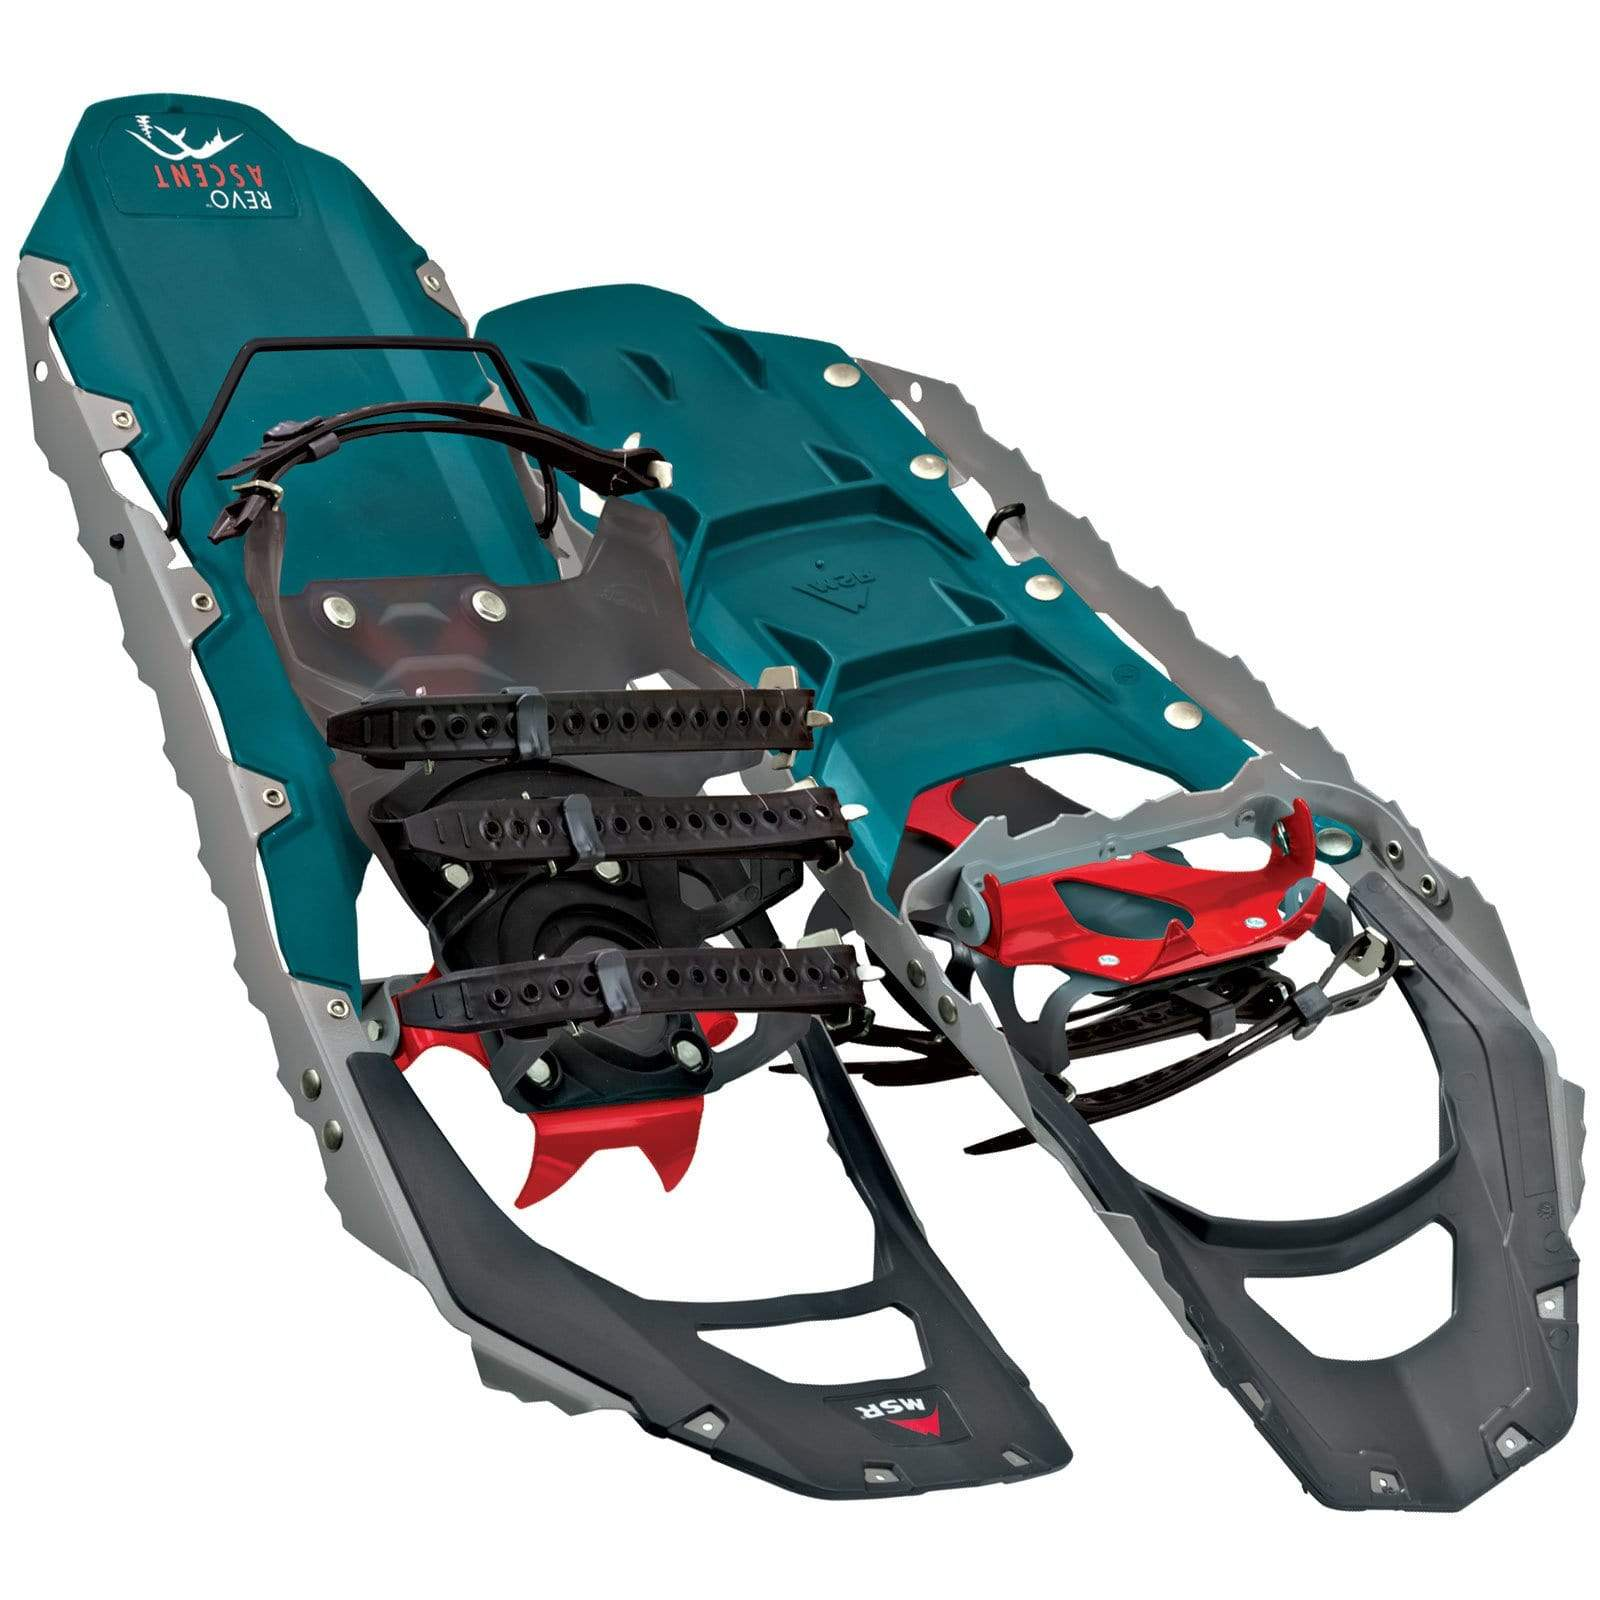 MSR Other Gear MSR Revo Ascent Snoeshoes Women 22 Dark Cyan X760,13088